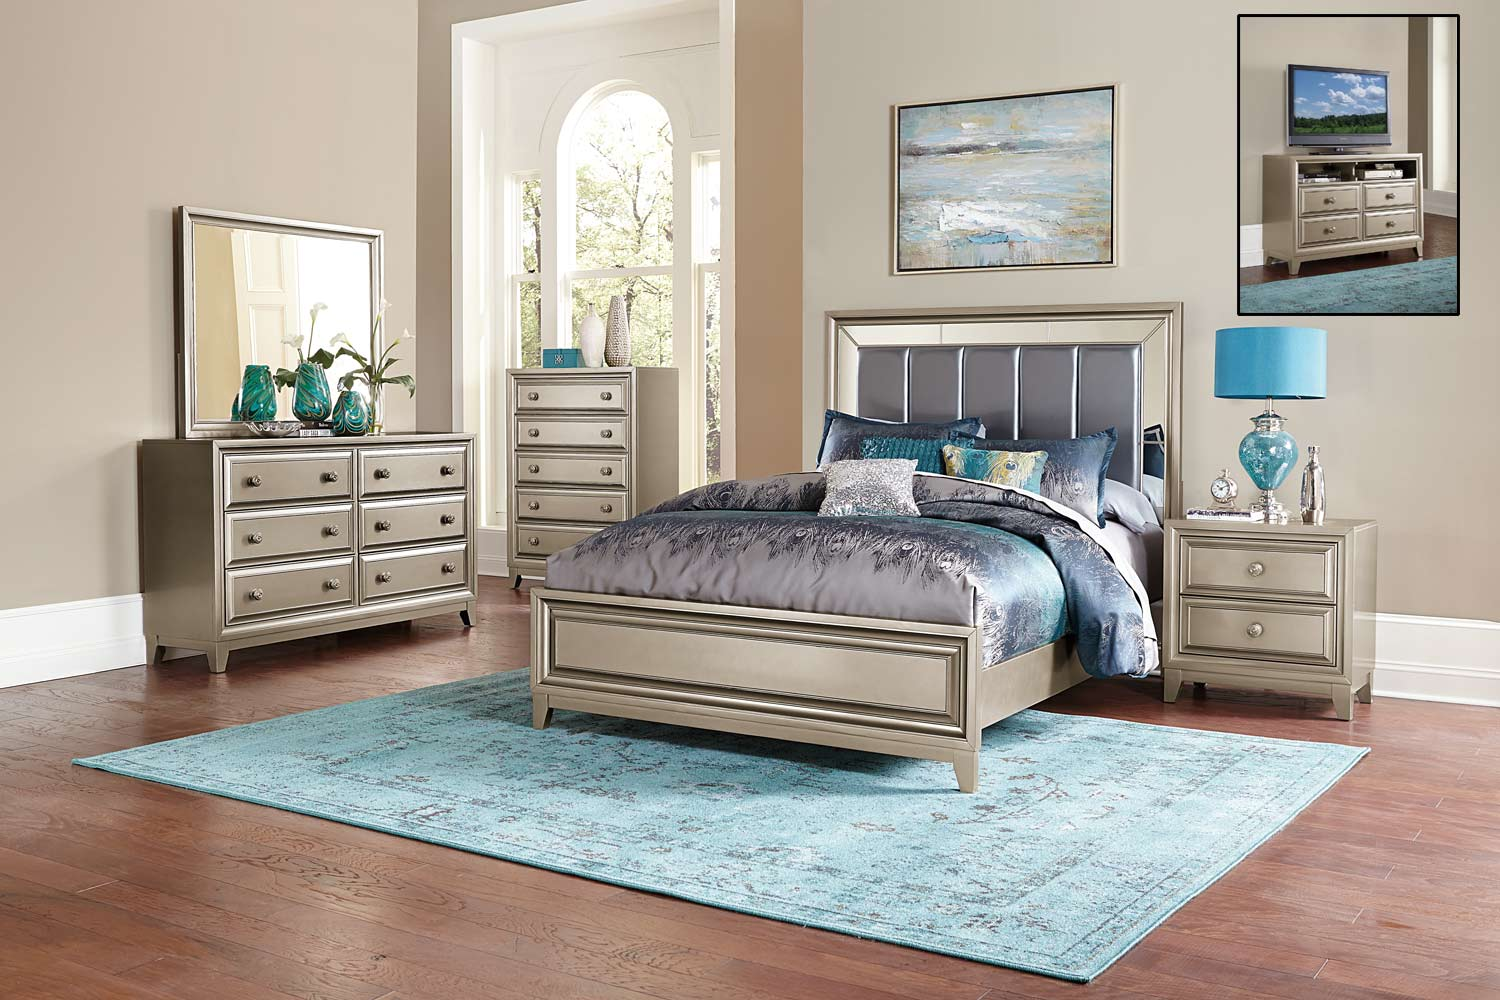 Upholstered Headboard Bedroom Sets Homelegance Hedy Bedroom Set Silver 1839 Bedroom Set